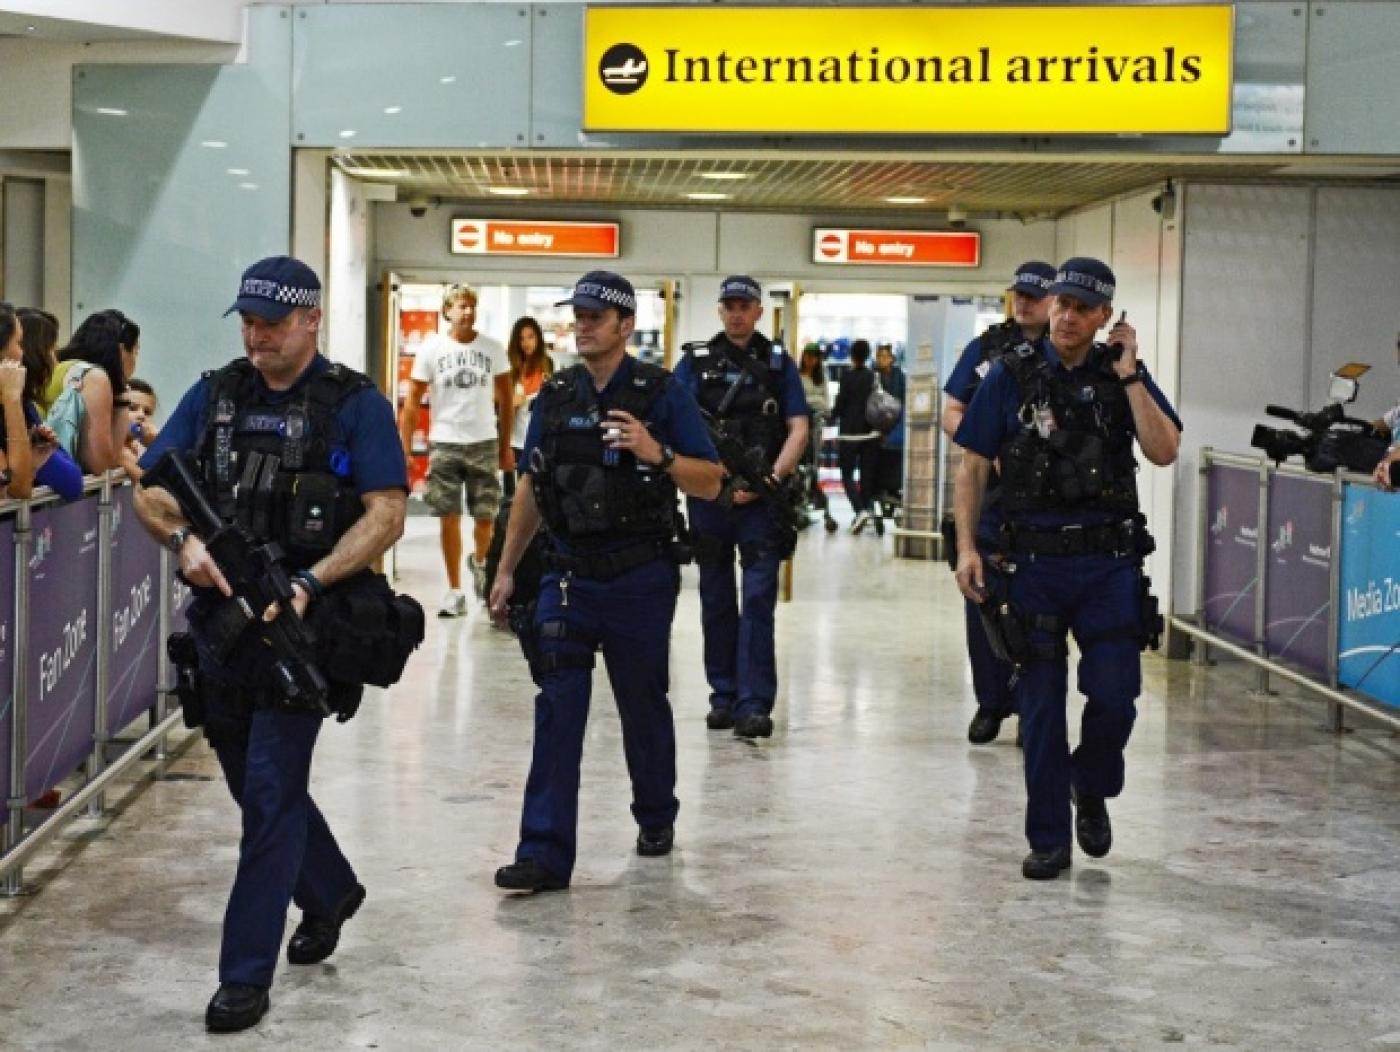 British man charged with terrorism offence after deportation